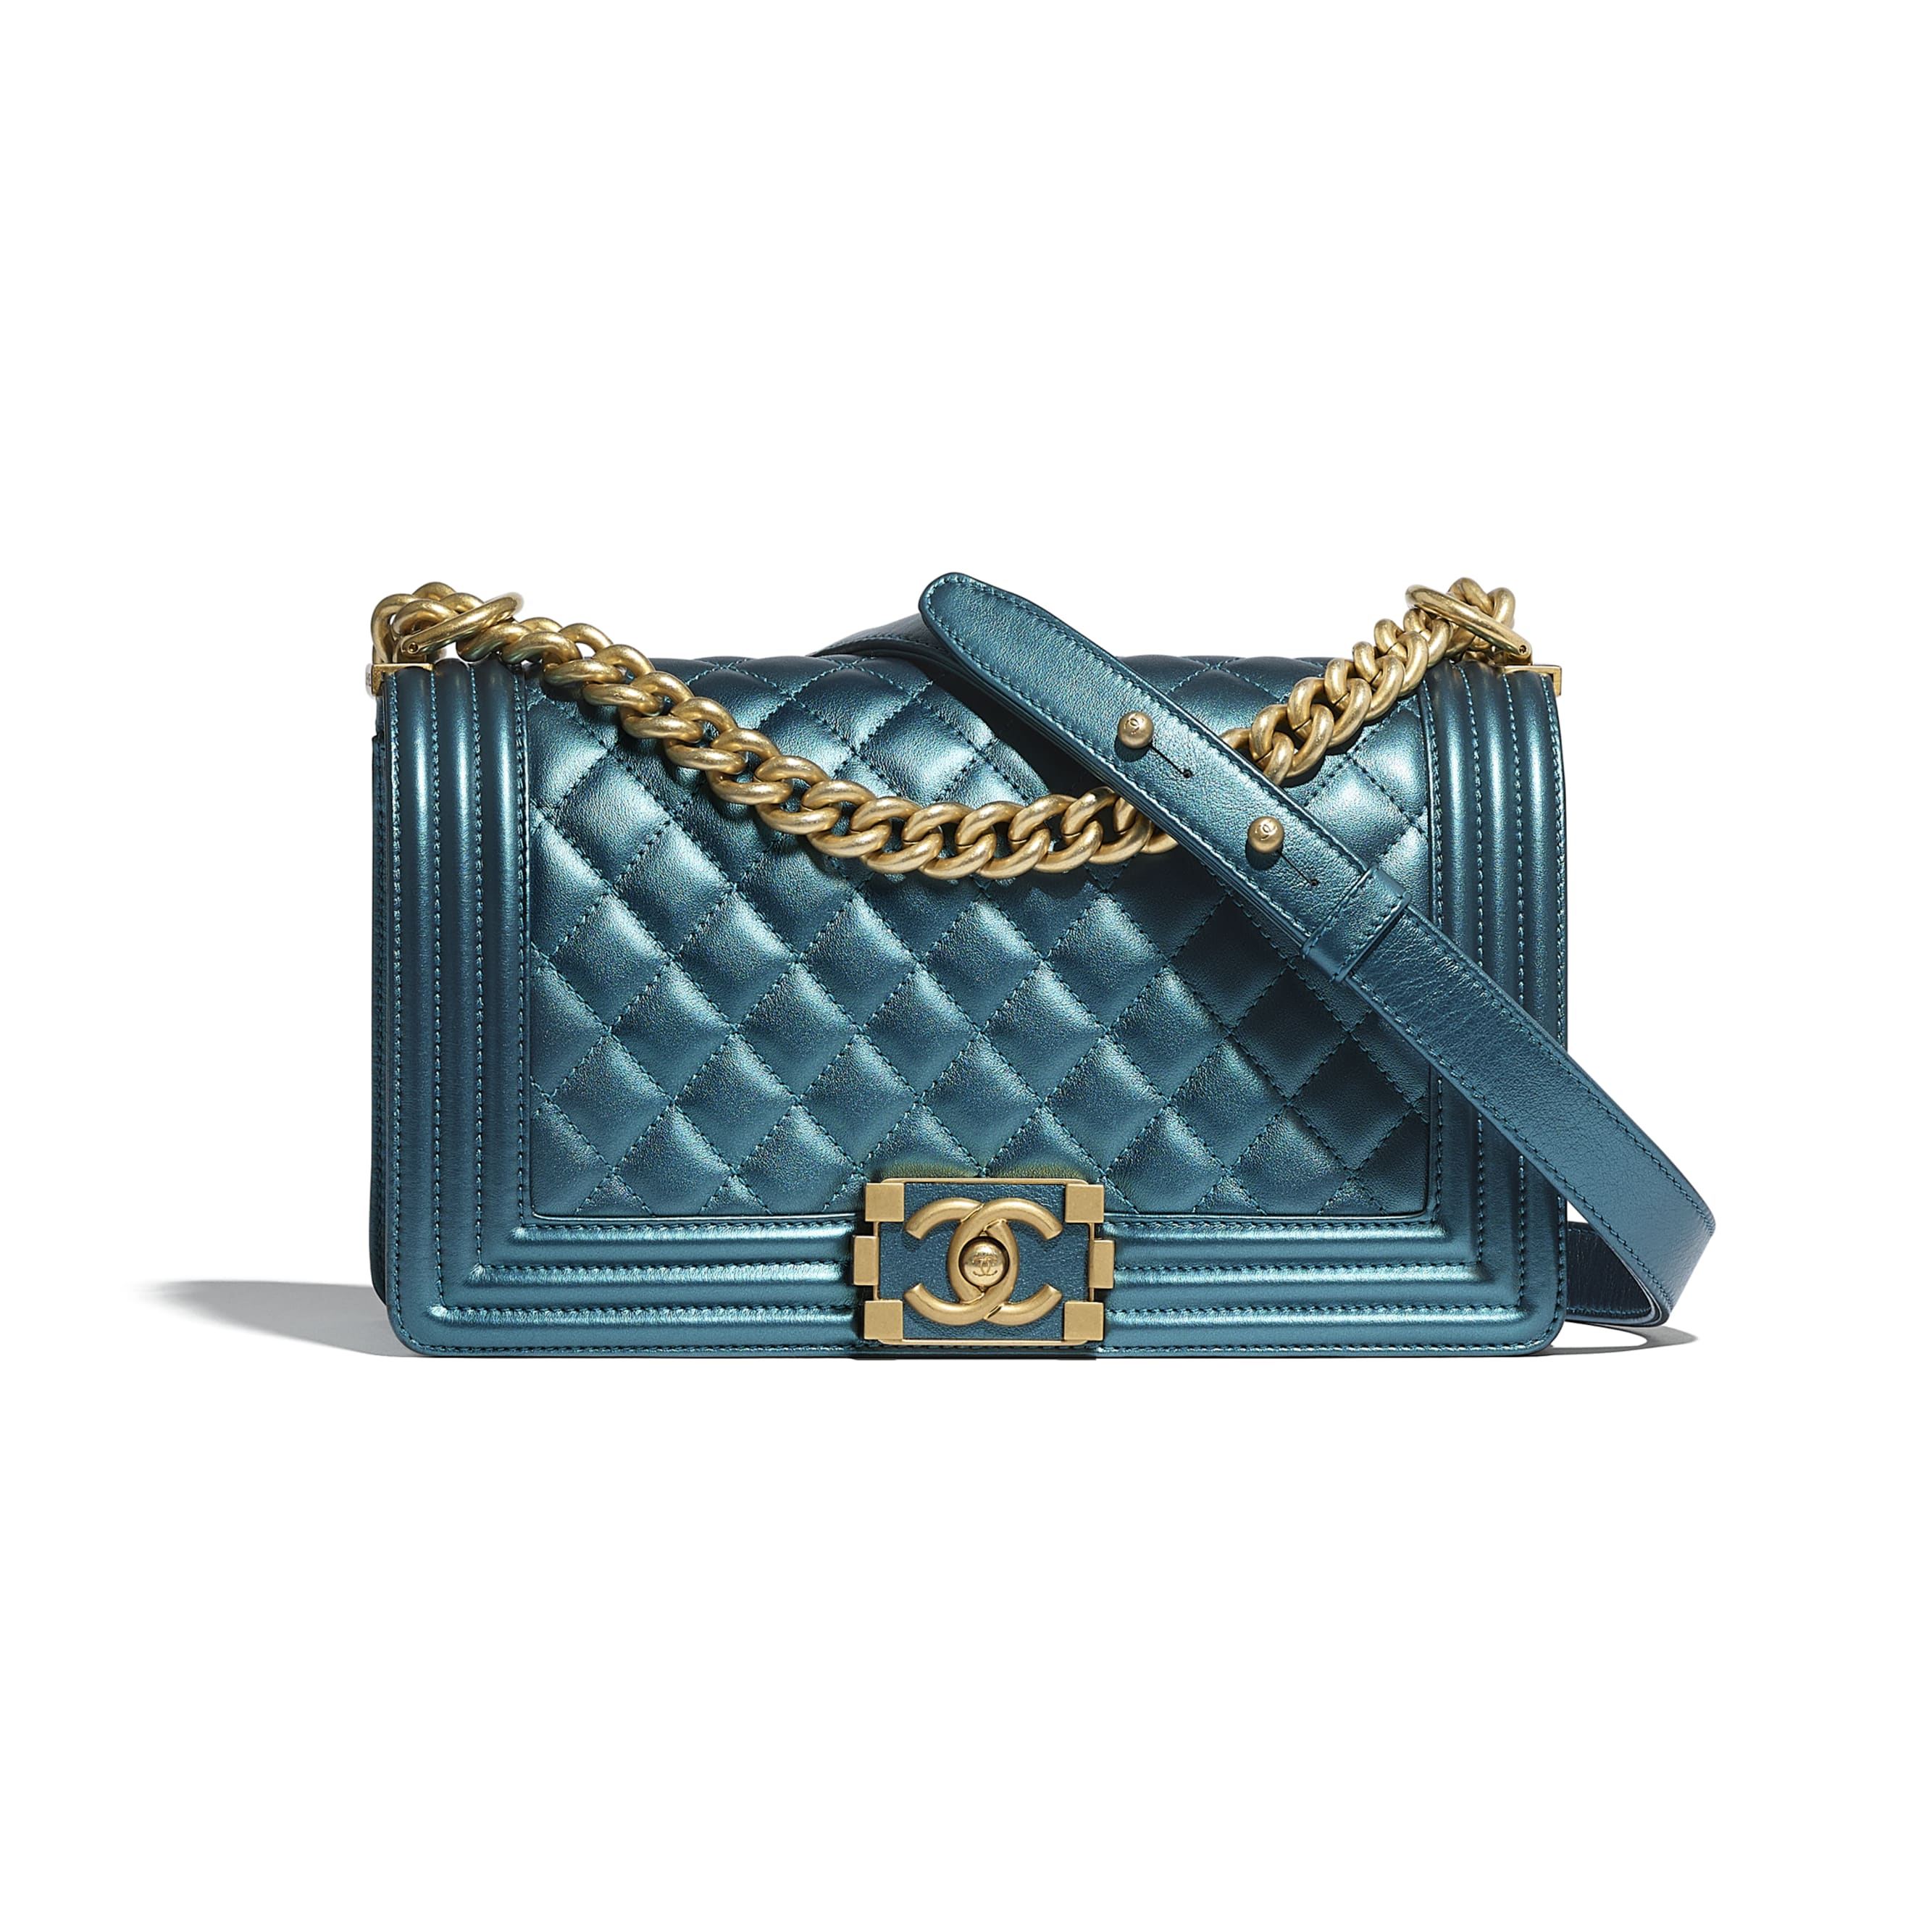 BOY CHANEL Handbag - Navy Blue - Metallic Calfskin & Gold Metal - CHANEL - Default view - see standard sized version